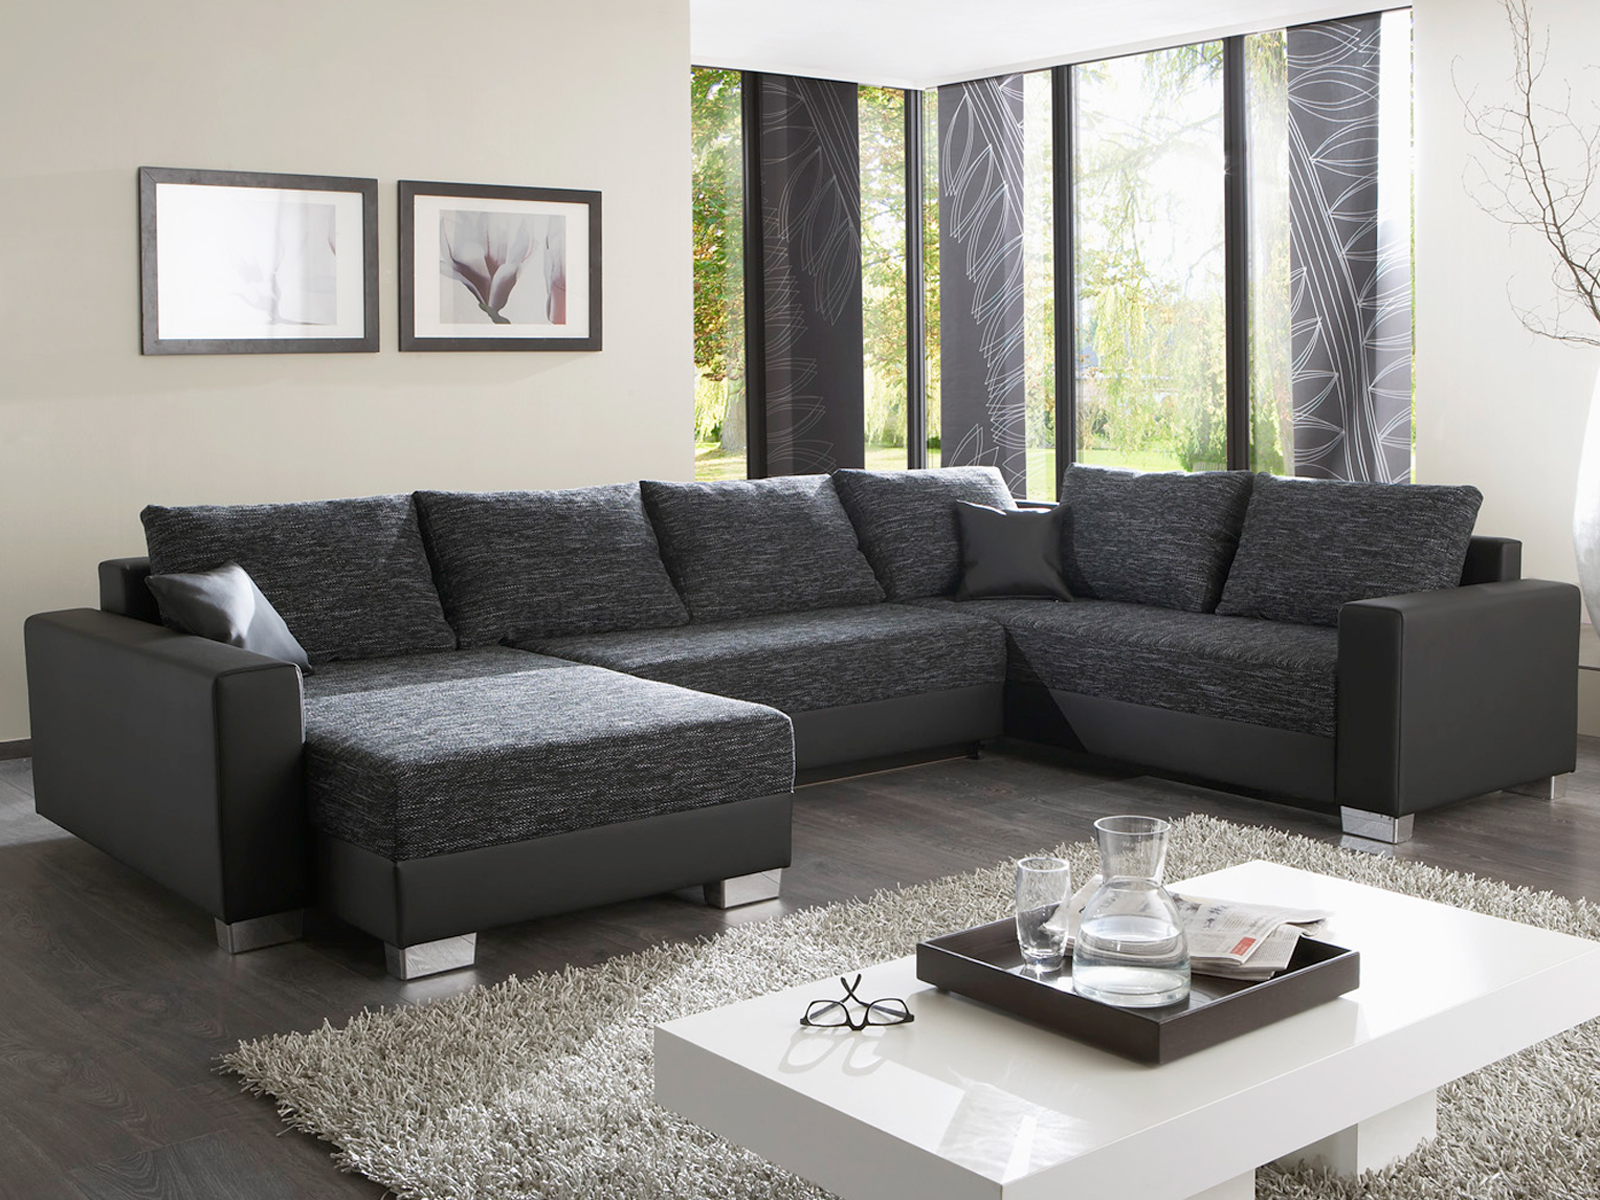 wohnlandschaft abby sofa ecksofa in schwarz wei grau braun bettfunktion auswahl ebay. Black Bedroom Furniture Sets. Home Design Ideas